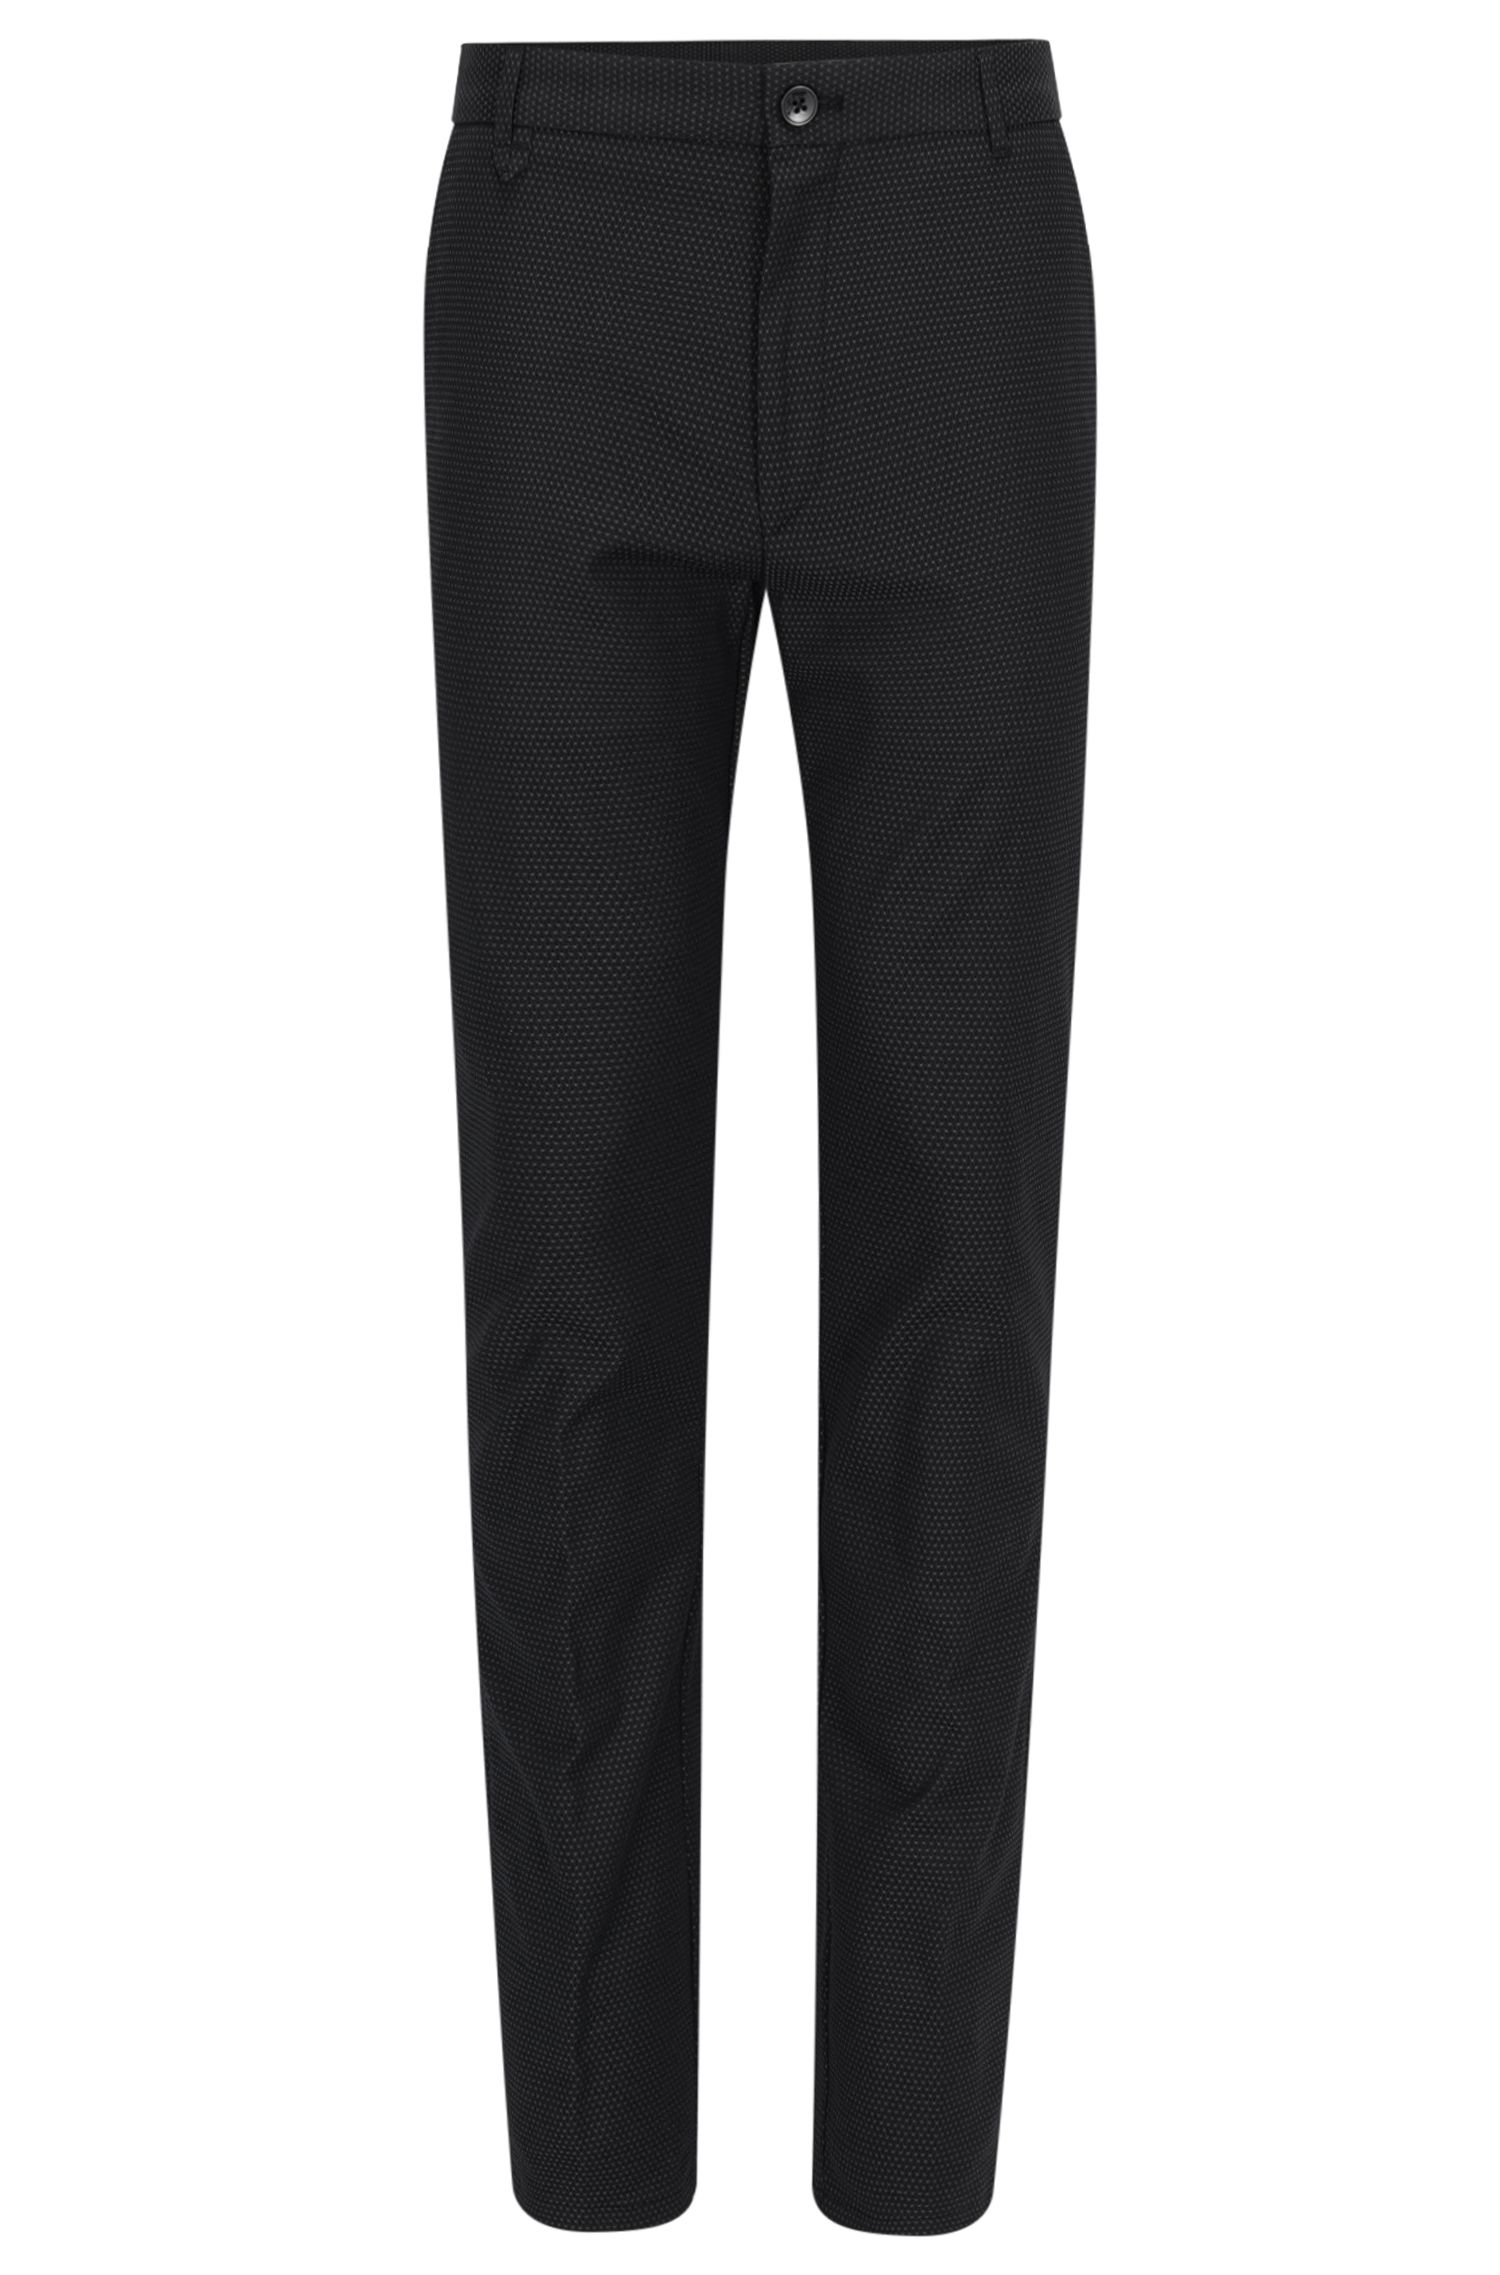 Patterned Stretch Cotton Pants, Extra Slim Fit | Heldor